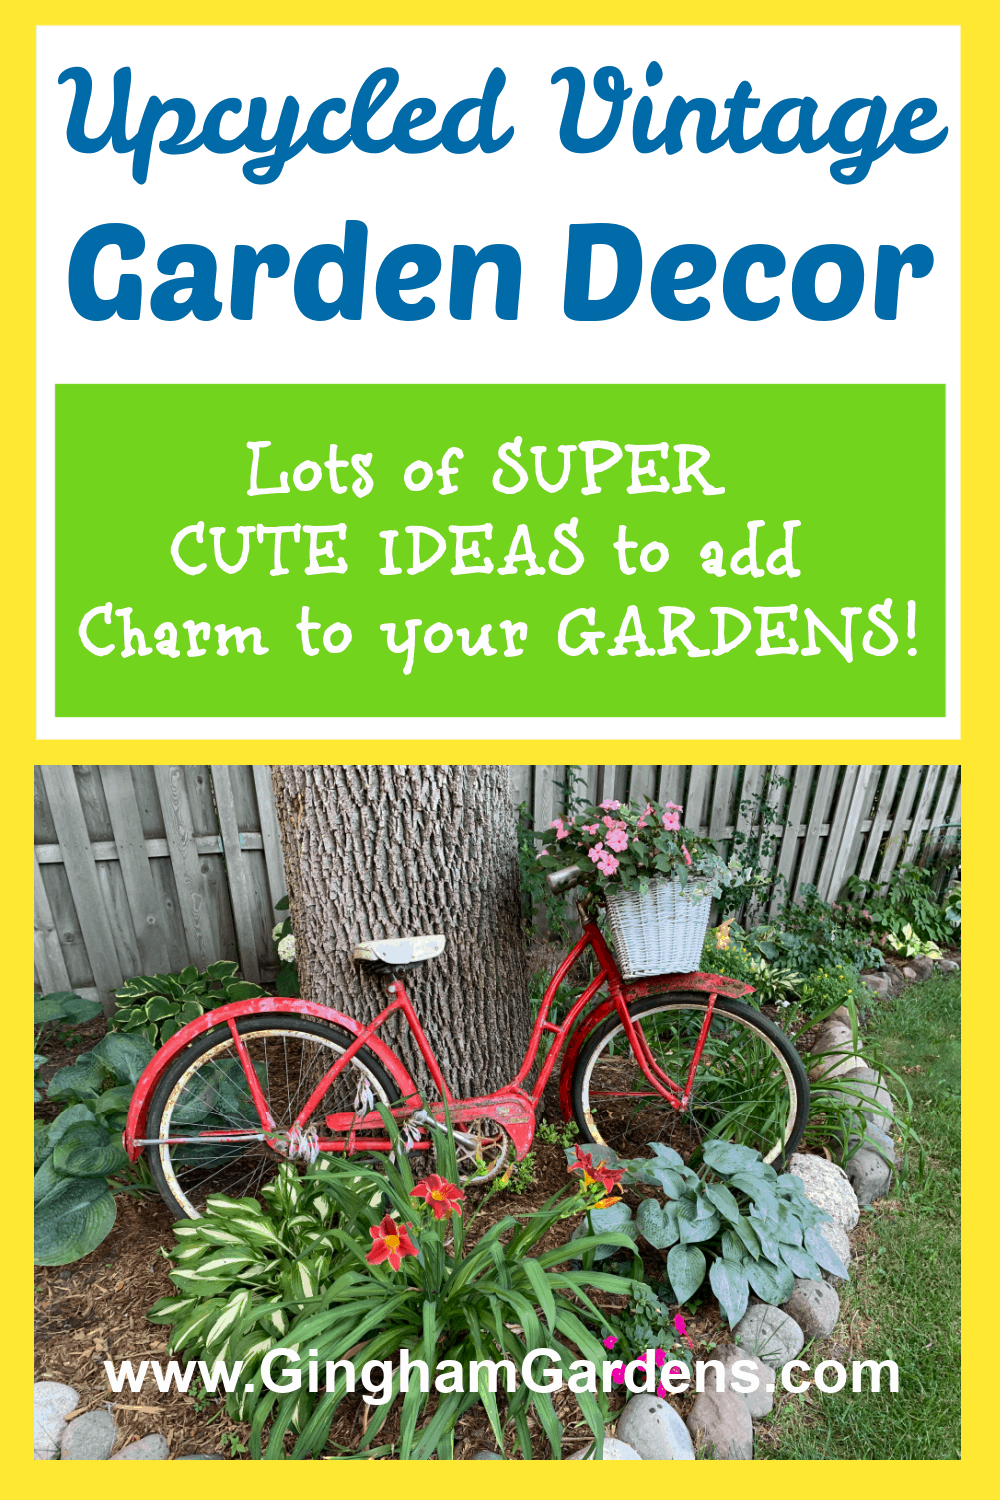 Image of a Bicycle in a Garden with text overlay - Upcycled Vintage Garden Decor